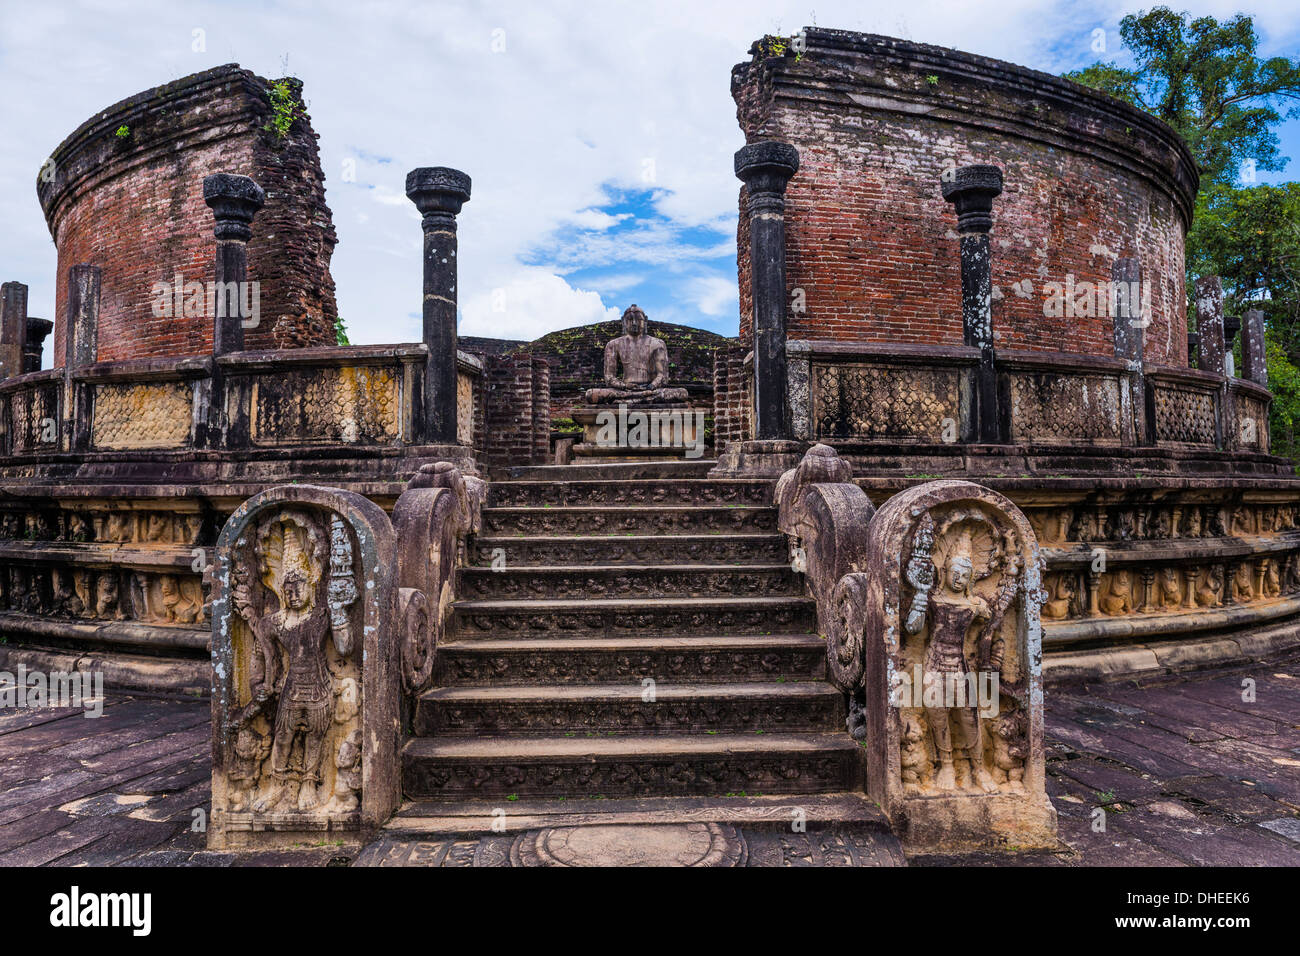 Vatadage (Circular Relic House), Polonnaruwa Quadrangle, UNESCO World Heritage Site, Sri Lanka,Asia - Stock Image